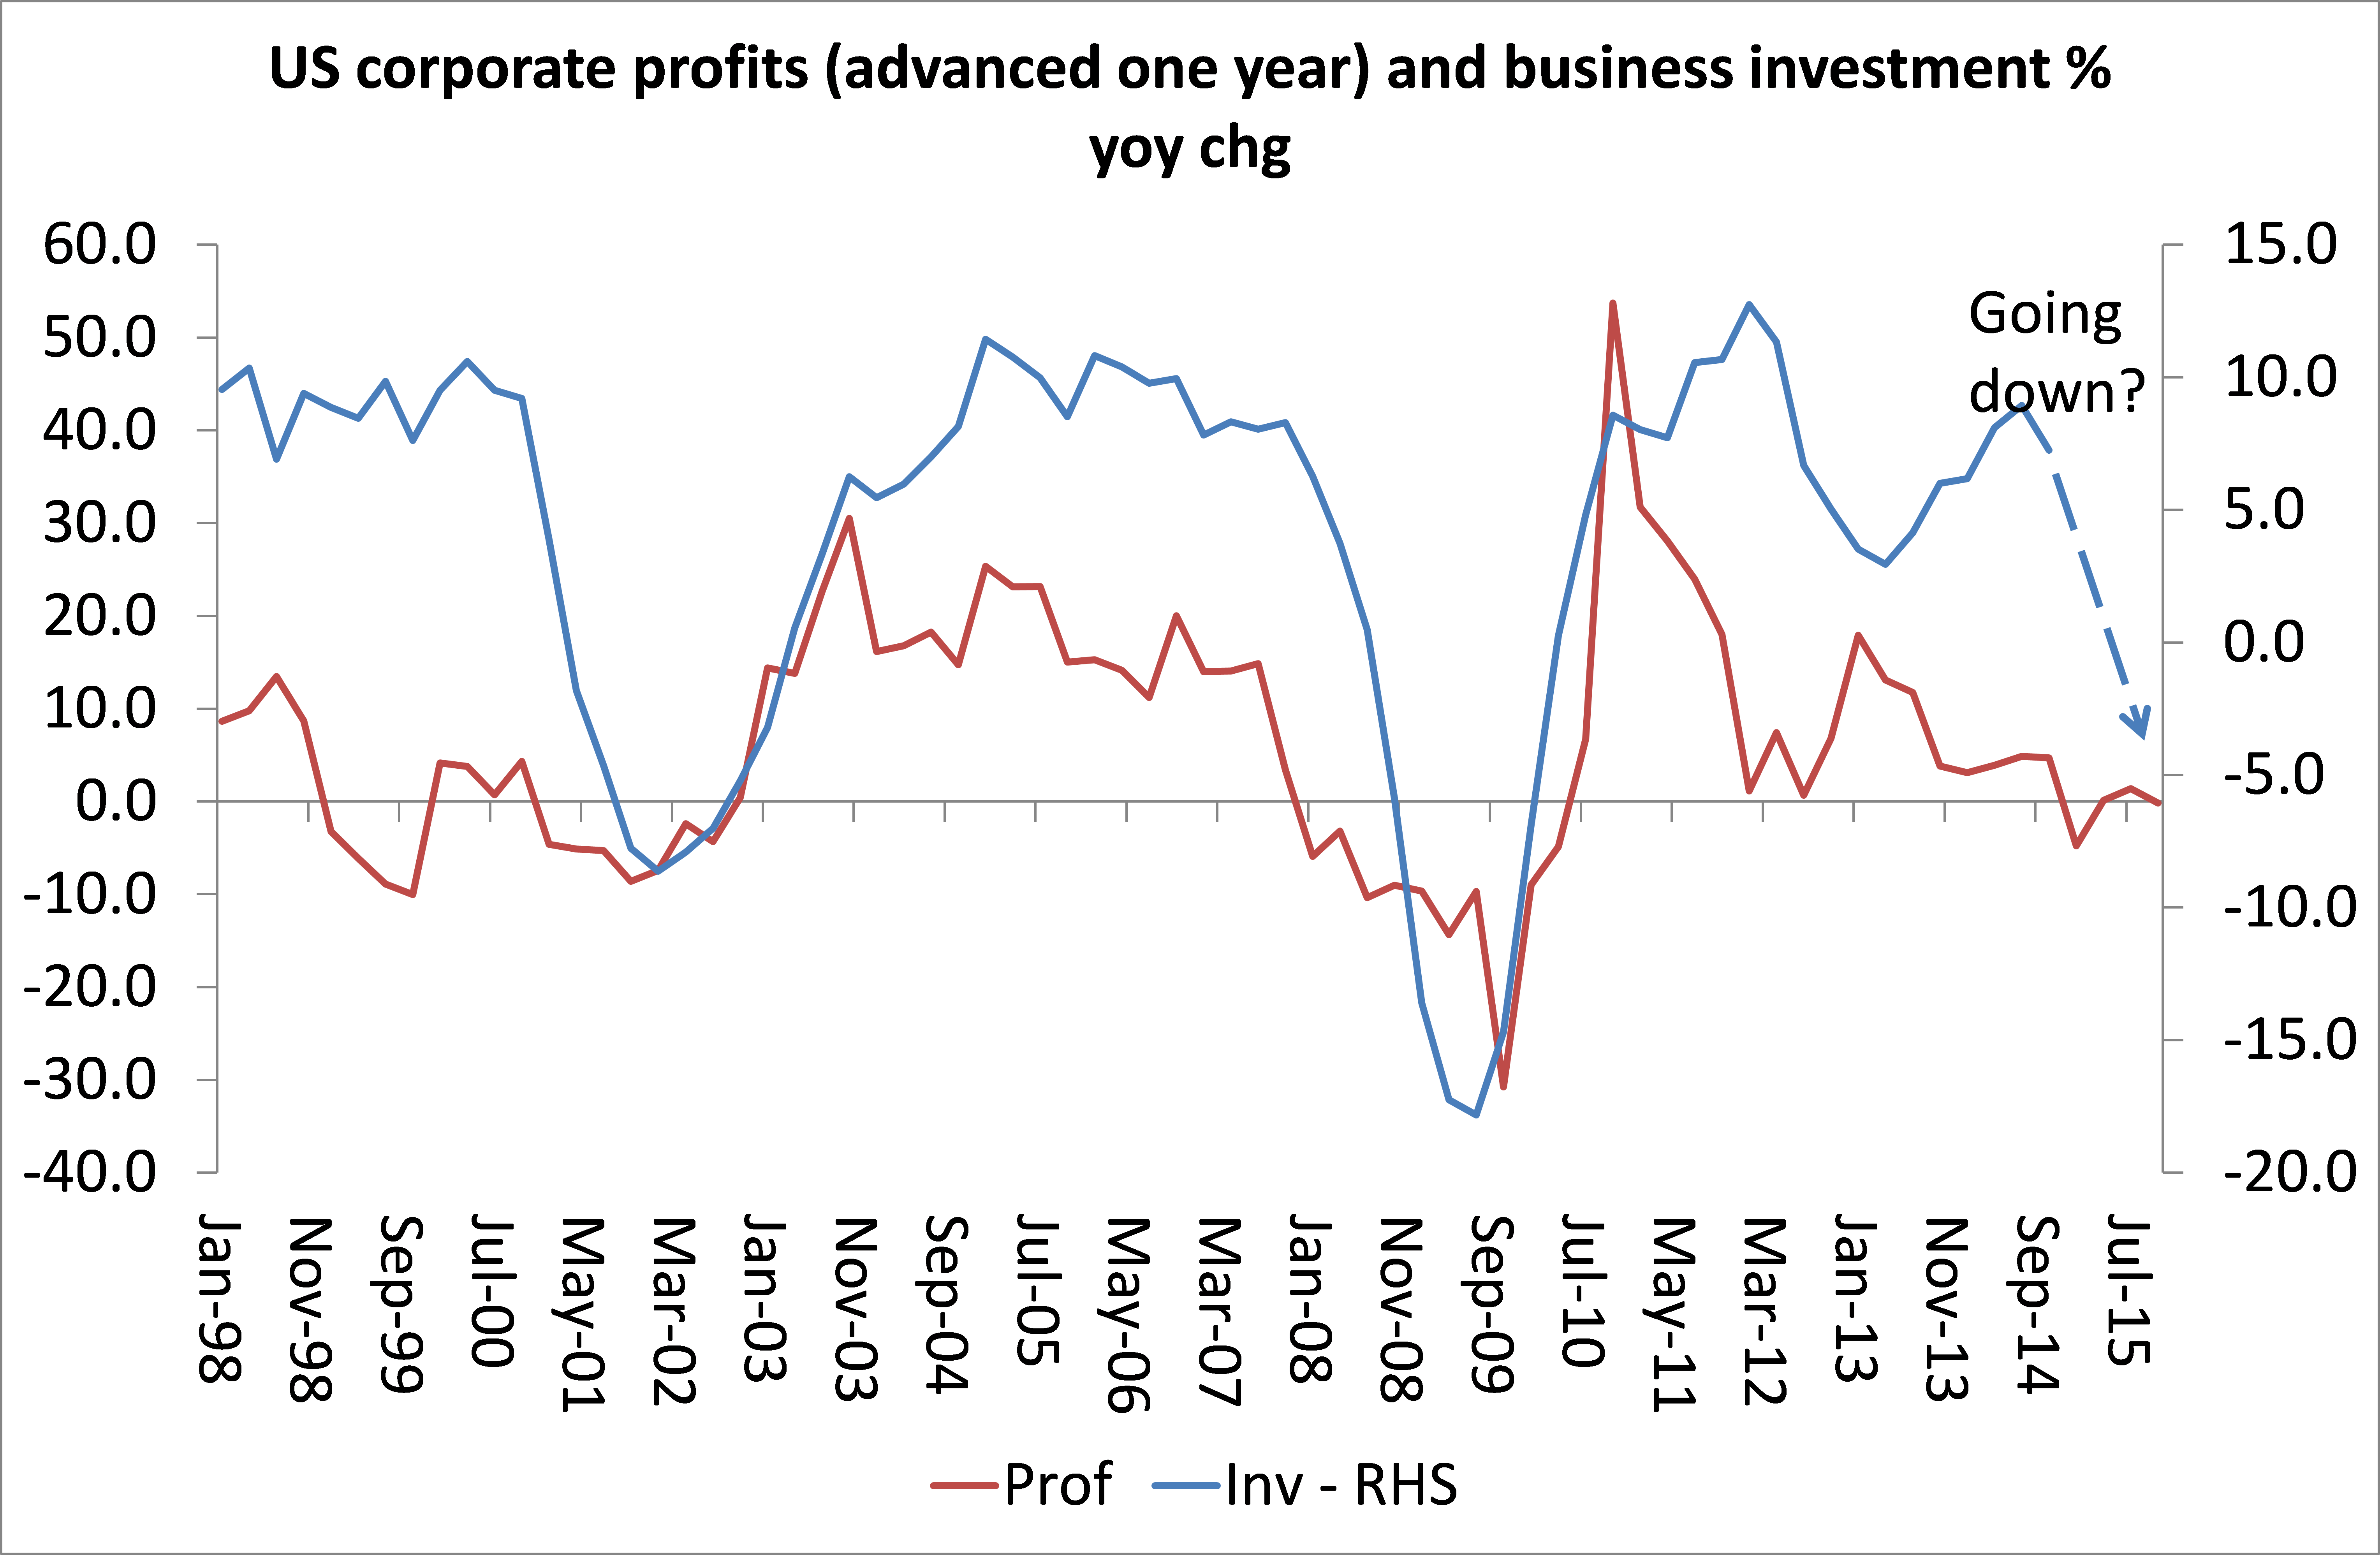 November 2015 michael roberts blog us corporate profit and investment ccuart Choice Image